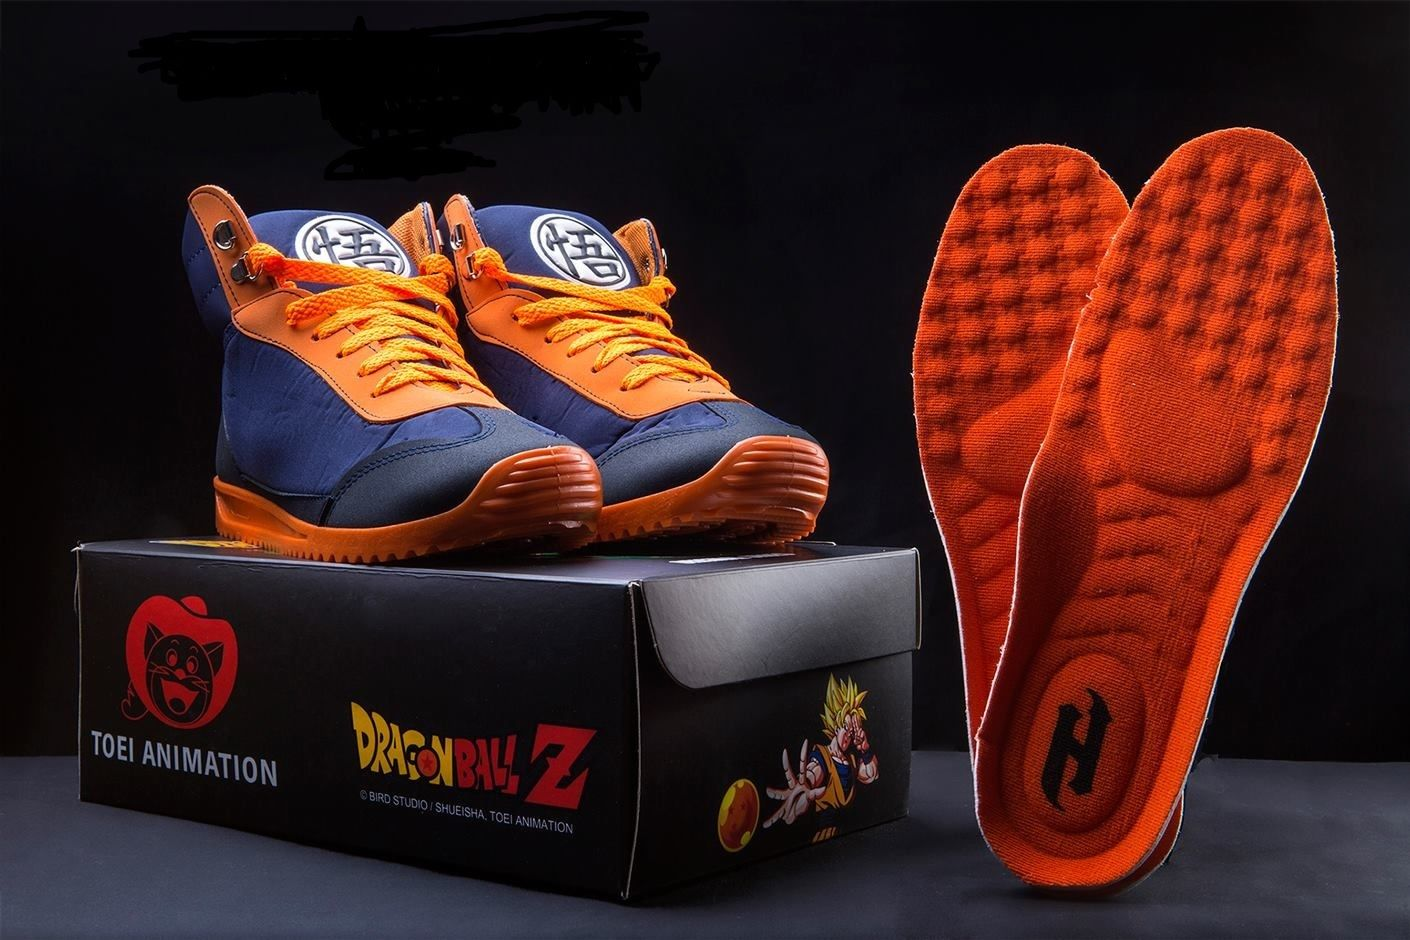 dragon ball adidas release date